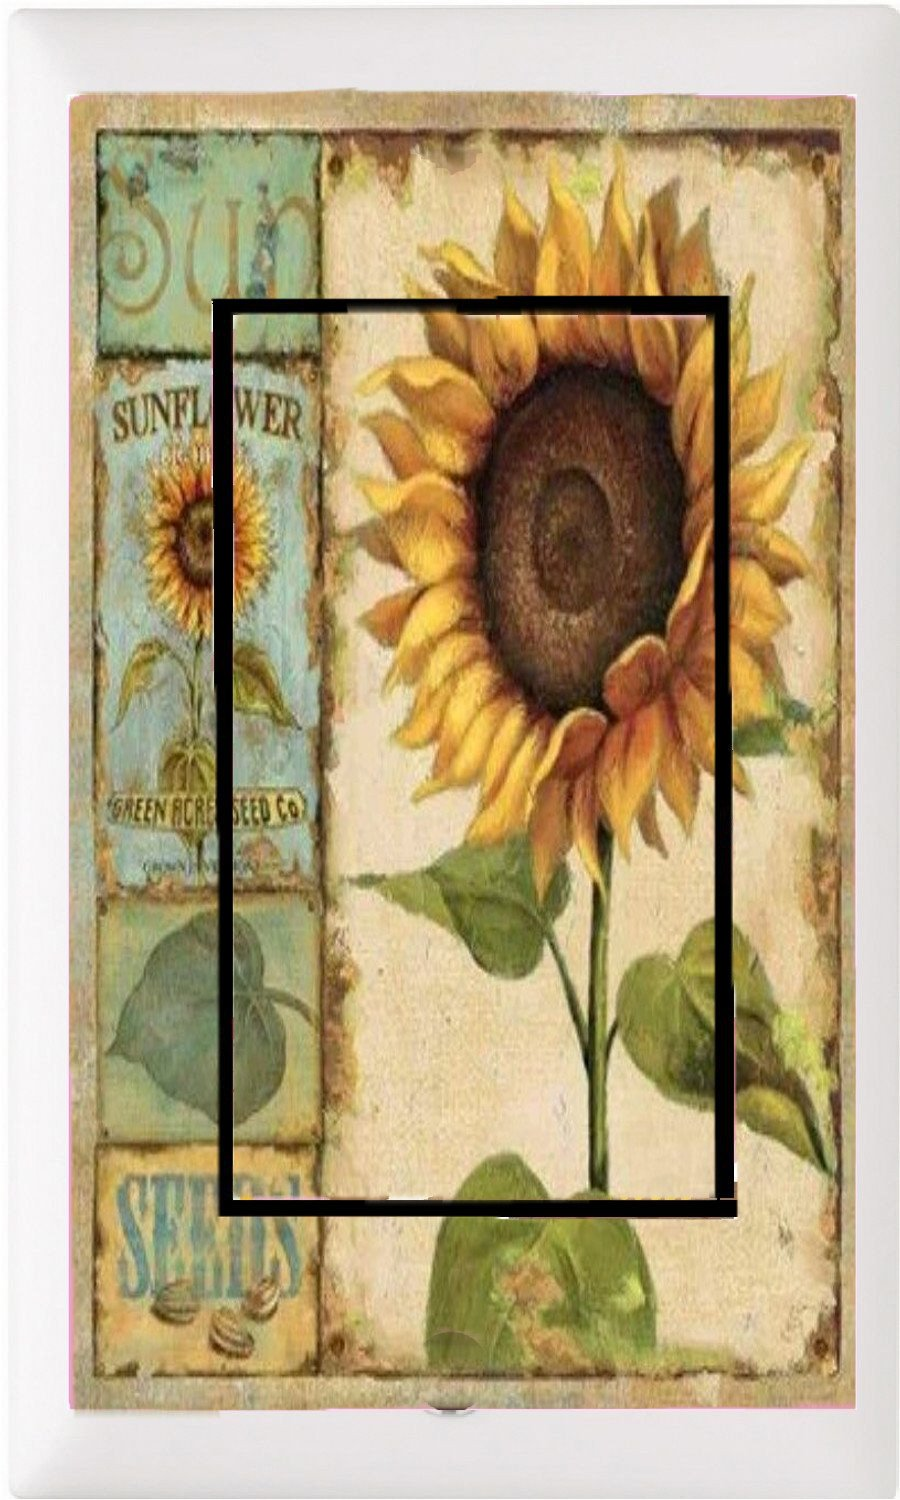 GYC2 COUNTRY SUN FLOWERS PRIMITIVE HOME DECOR LIGHT SWITCH COVER PLATE OR OUTLET (1X ROCKER)